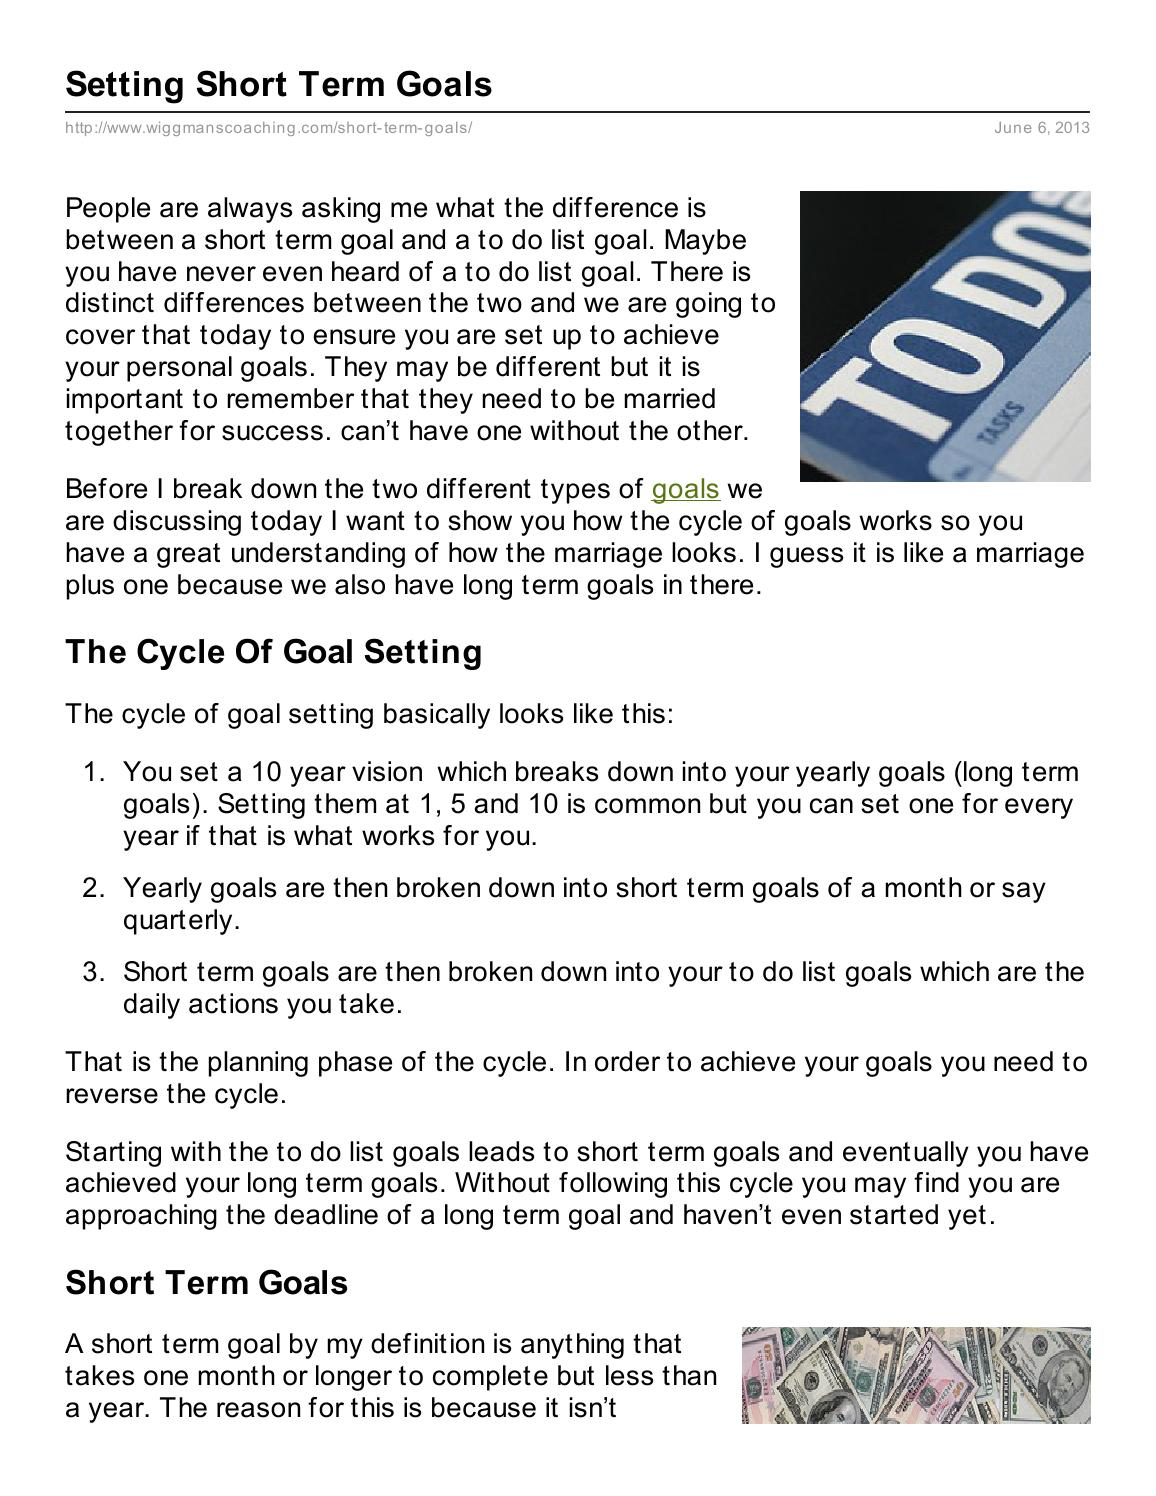 setting short term goals by darrin wiggins - issuu